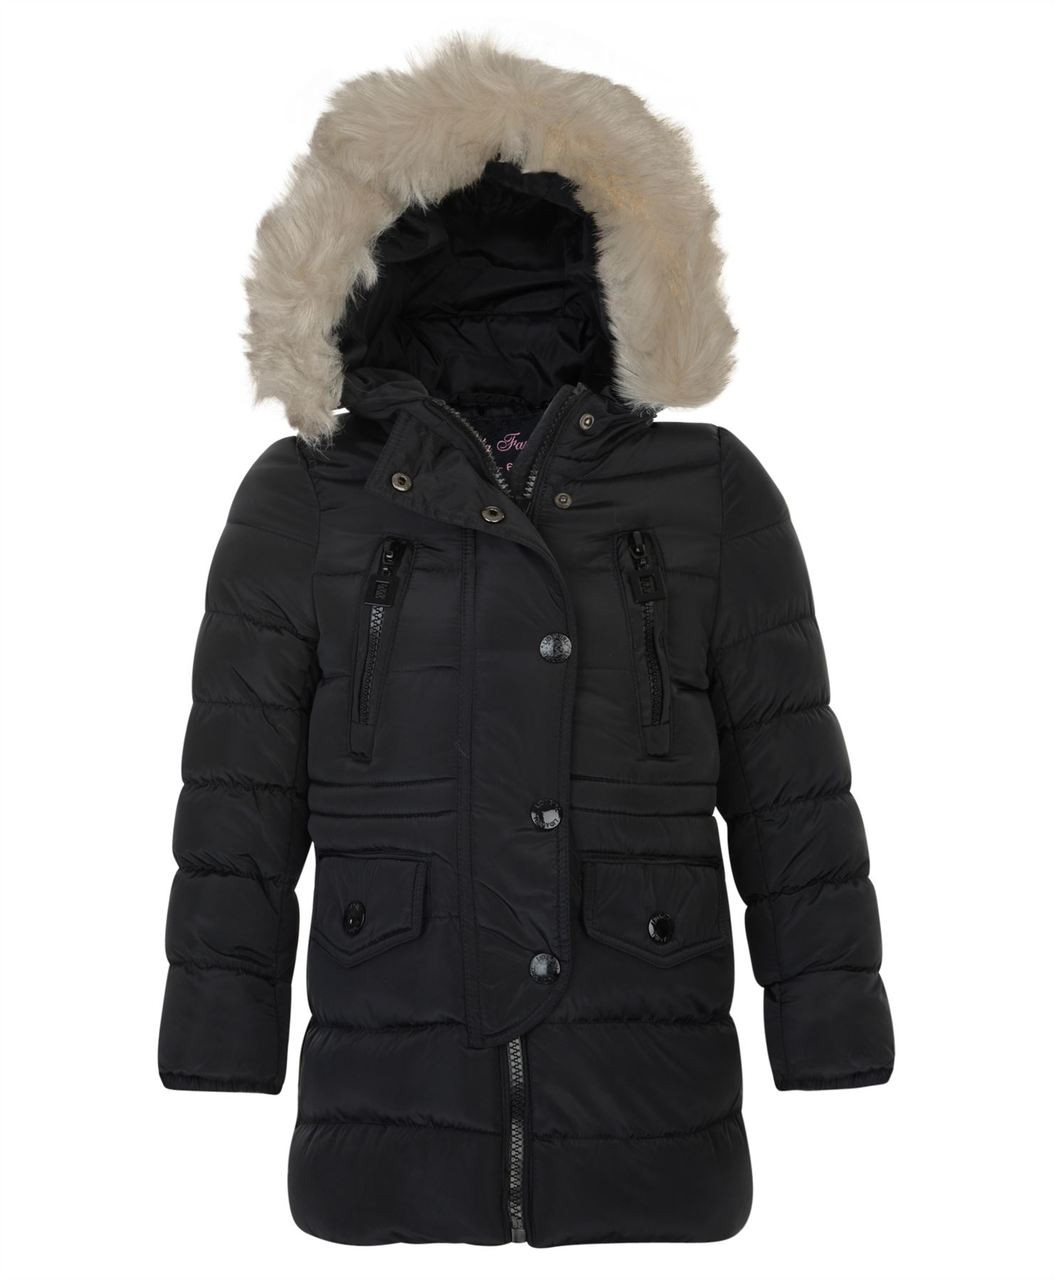 d9cd674375 Girls Winter Quilted Jacket 3-14 Y in Various Colors.